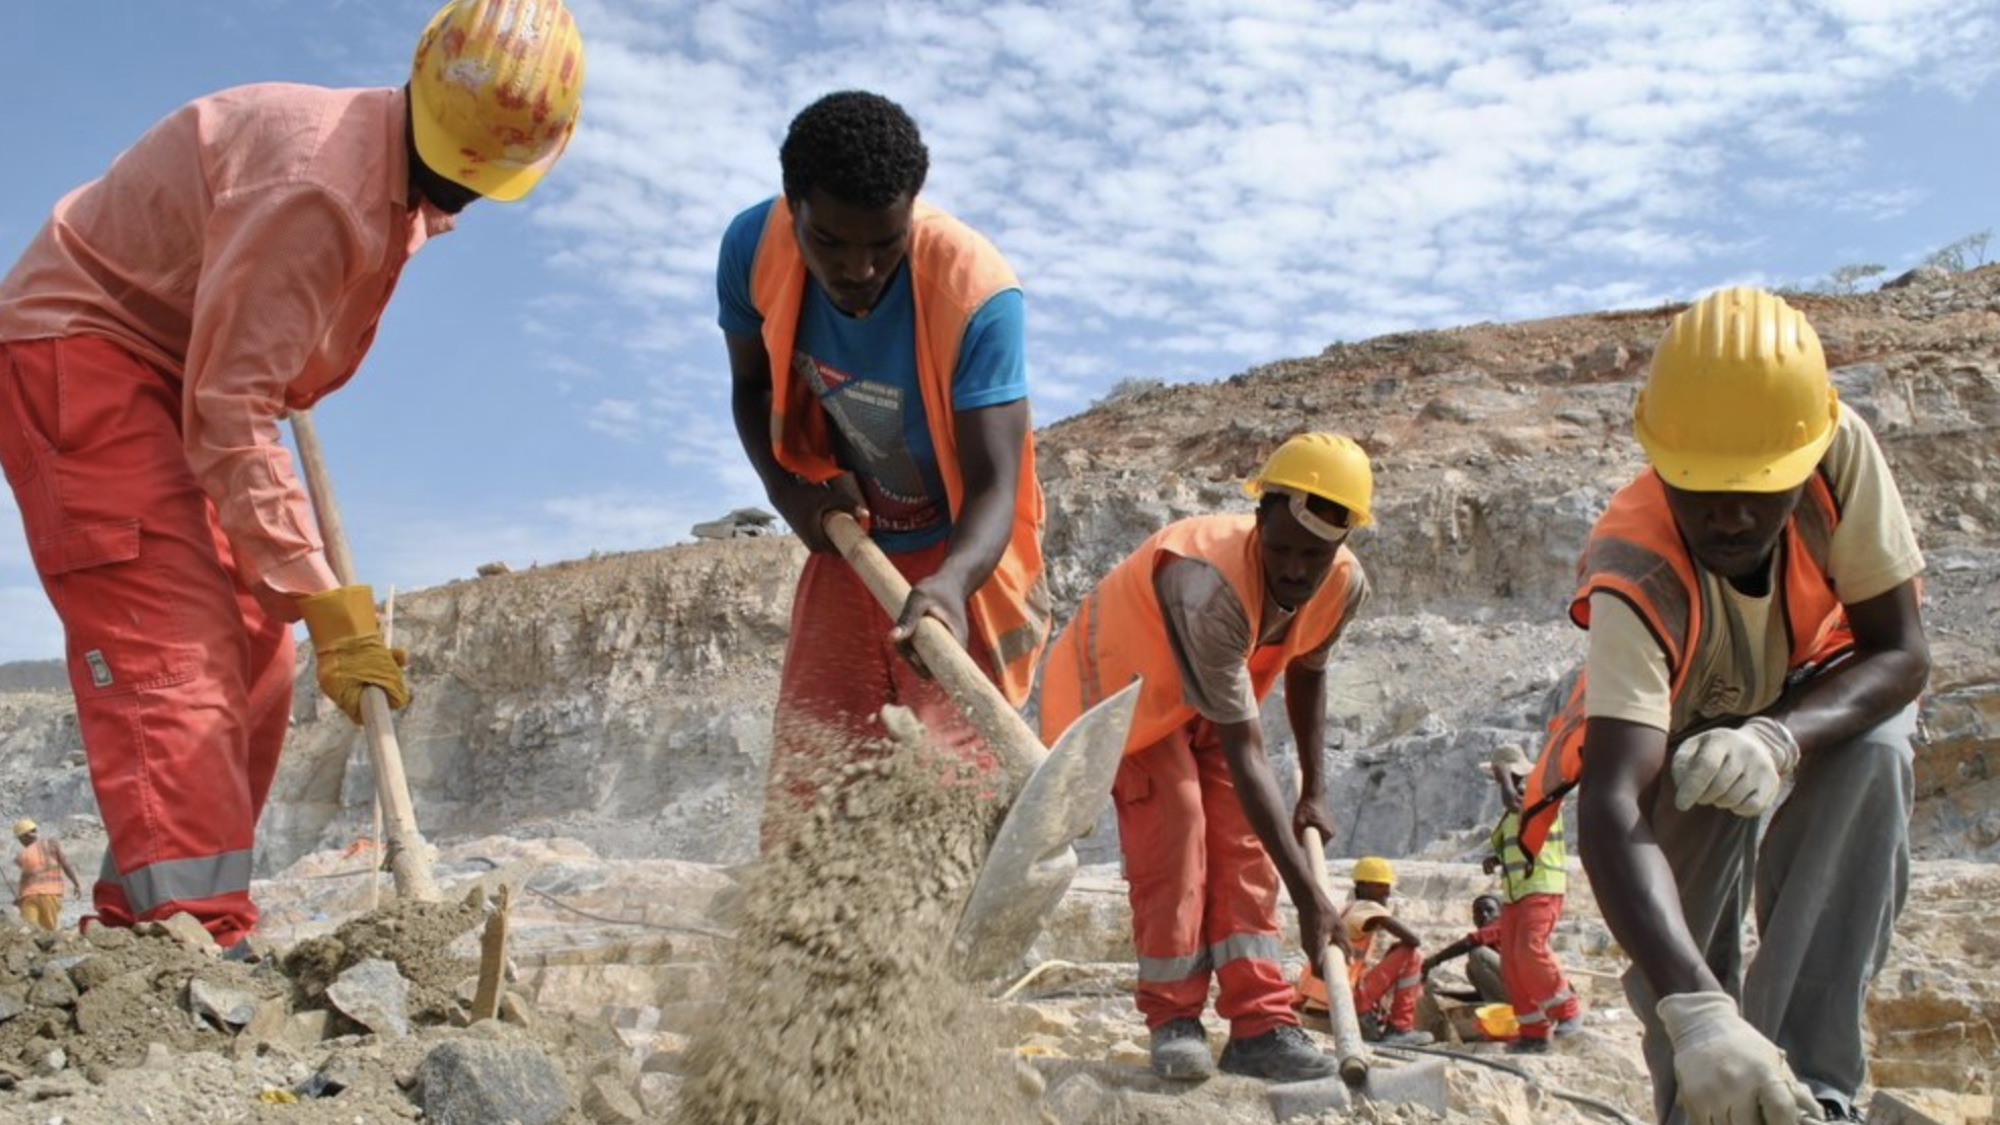 Several men wearing construction gear use tools to break ground for the GERD Dam in Ethiopia.